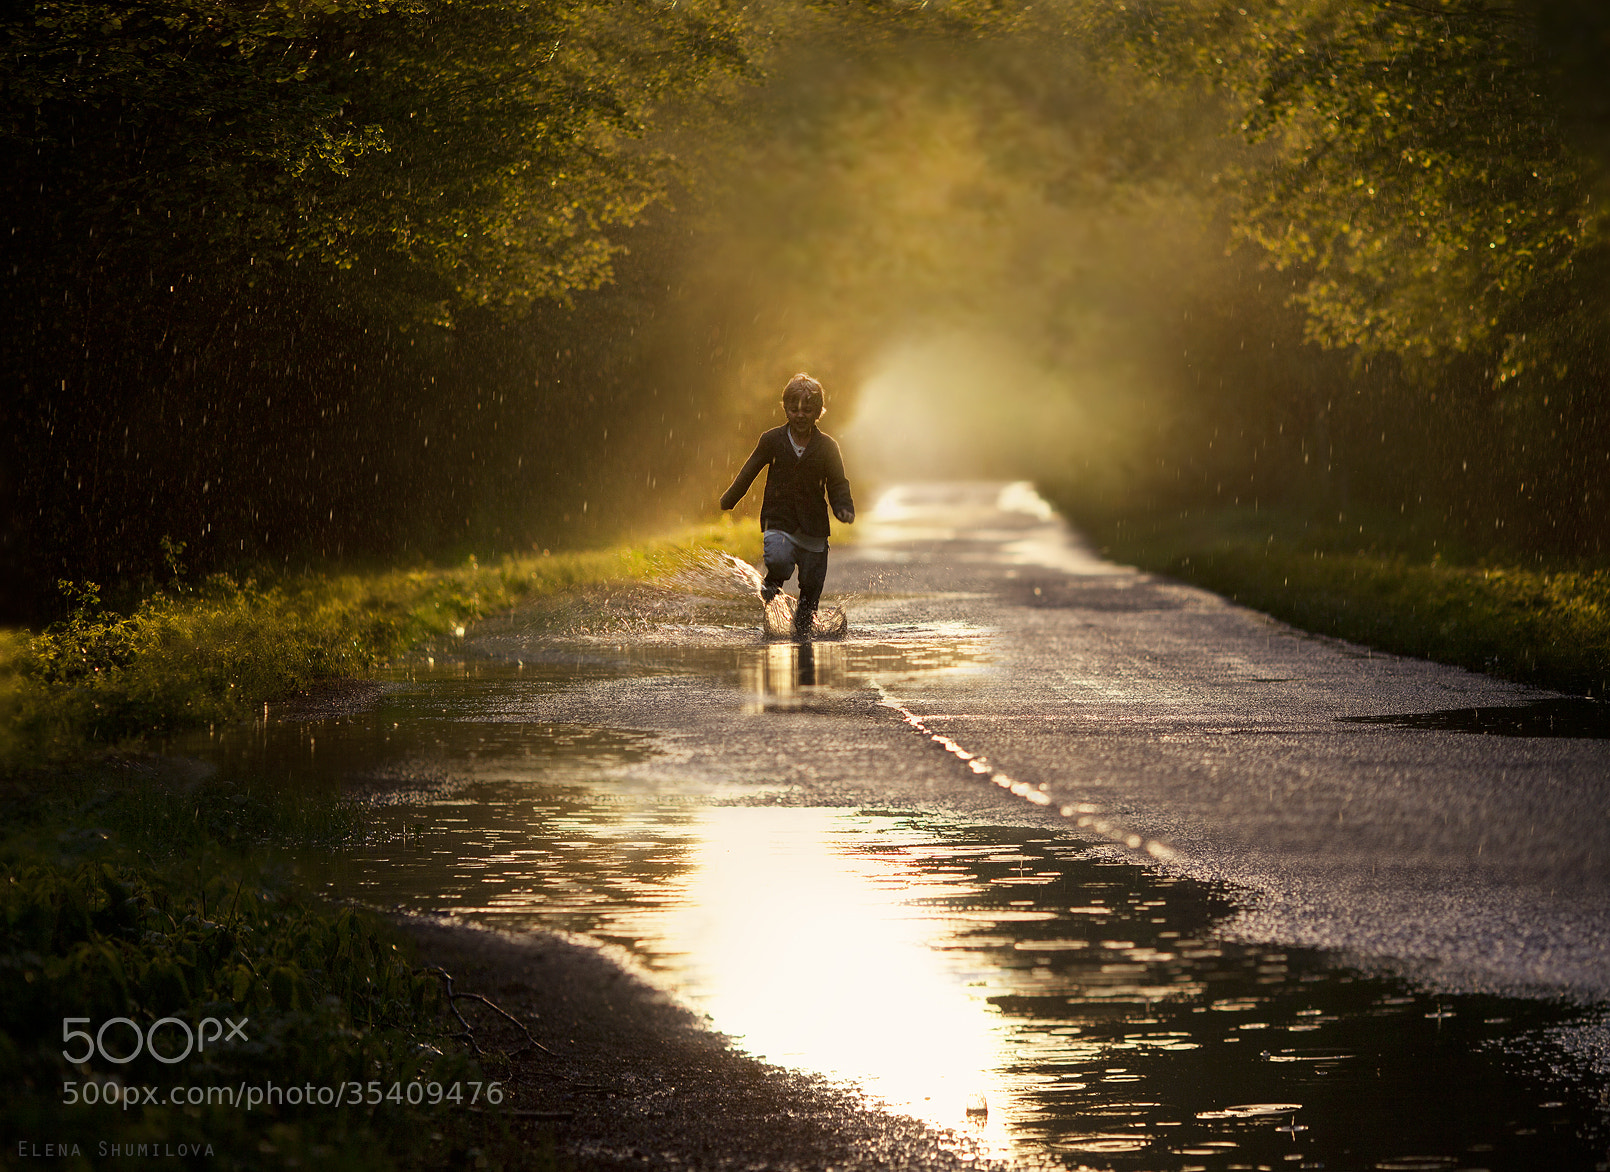 Photograph summer rain by Elena Shumilova on 500px